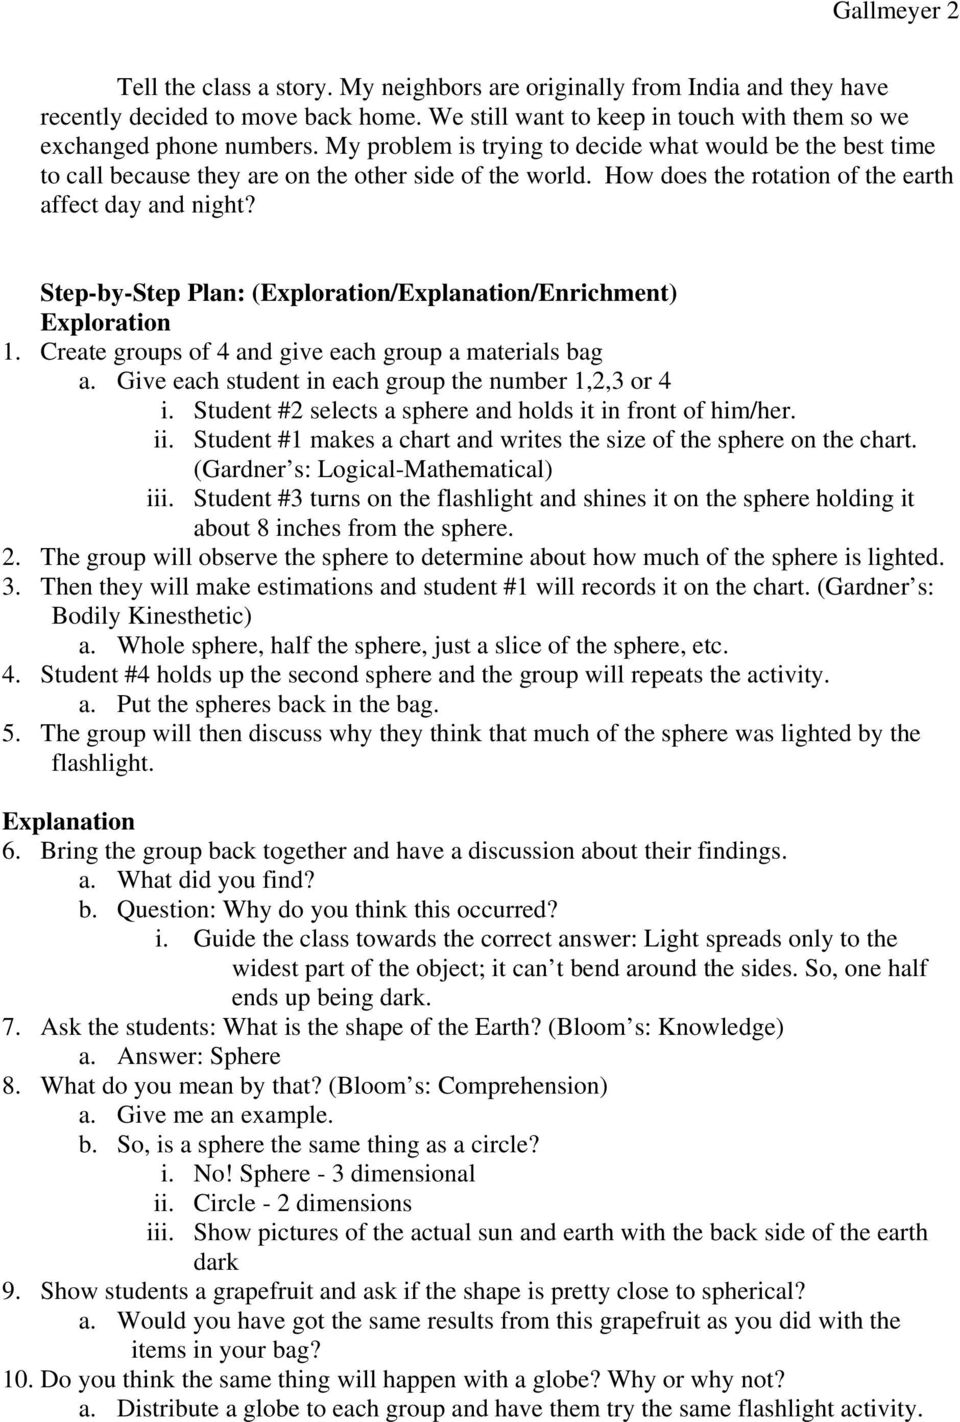 Step-by-Step Plan: (Exploration/Explanation/Enrichment) Exploration 1. Create groups of 4 and give each group a materials bag a. Give each student in each group the number 1,2,3 or 4 i.